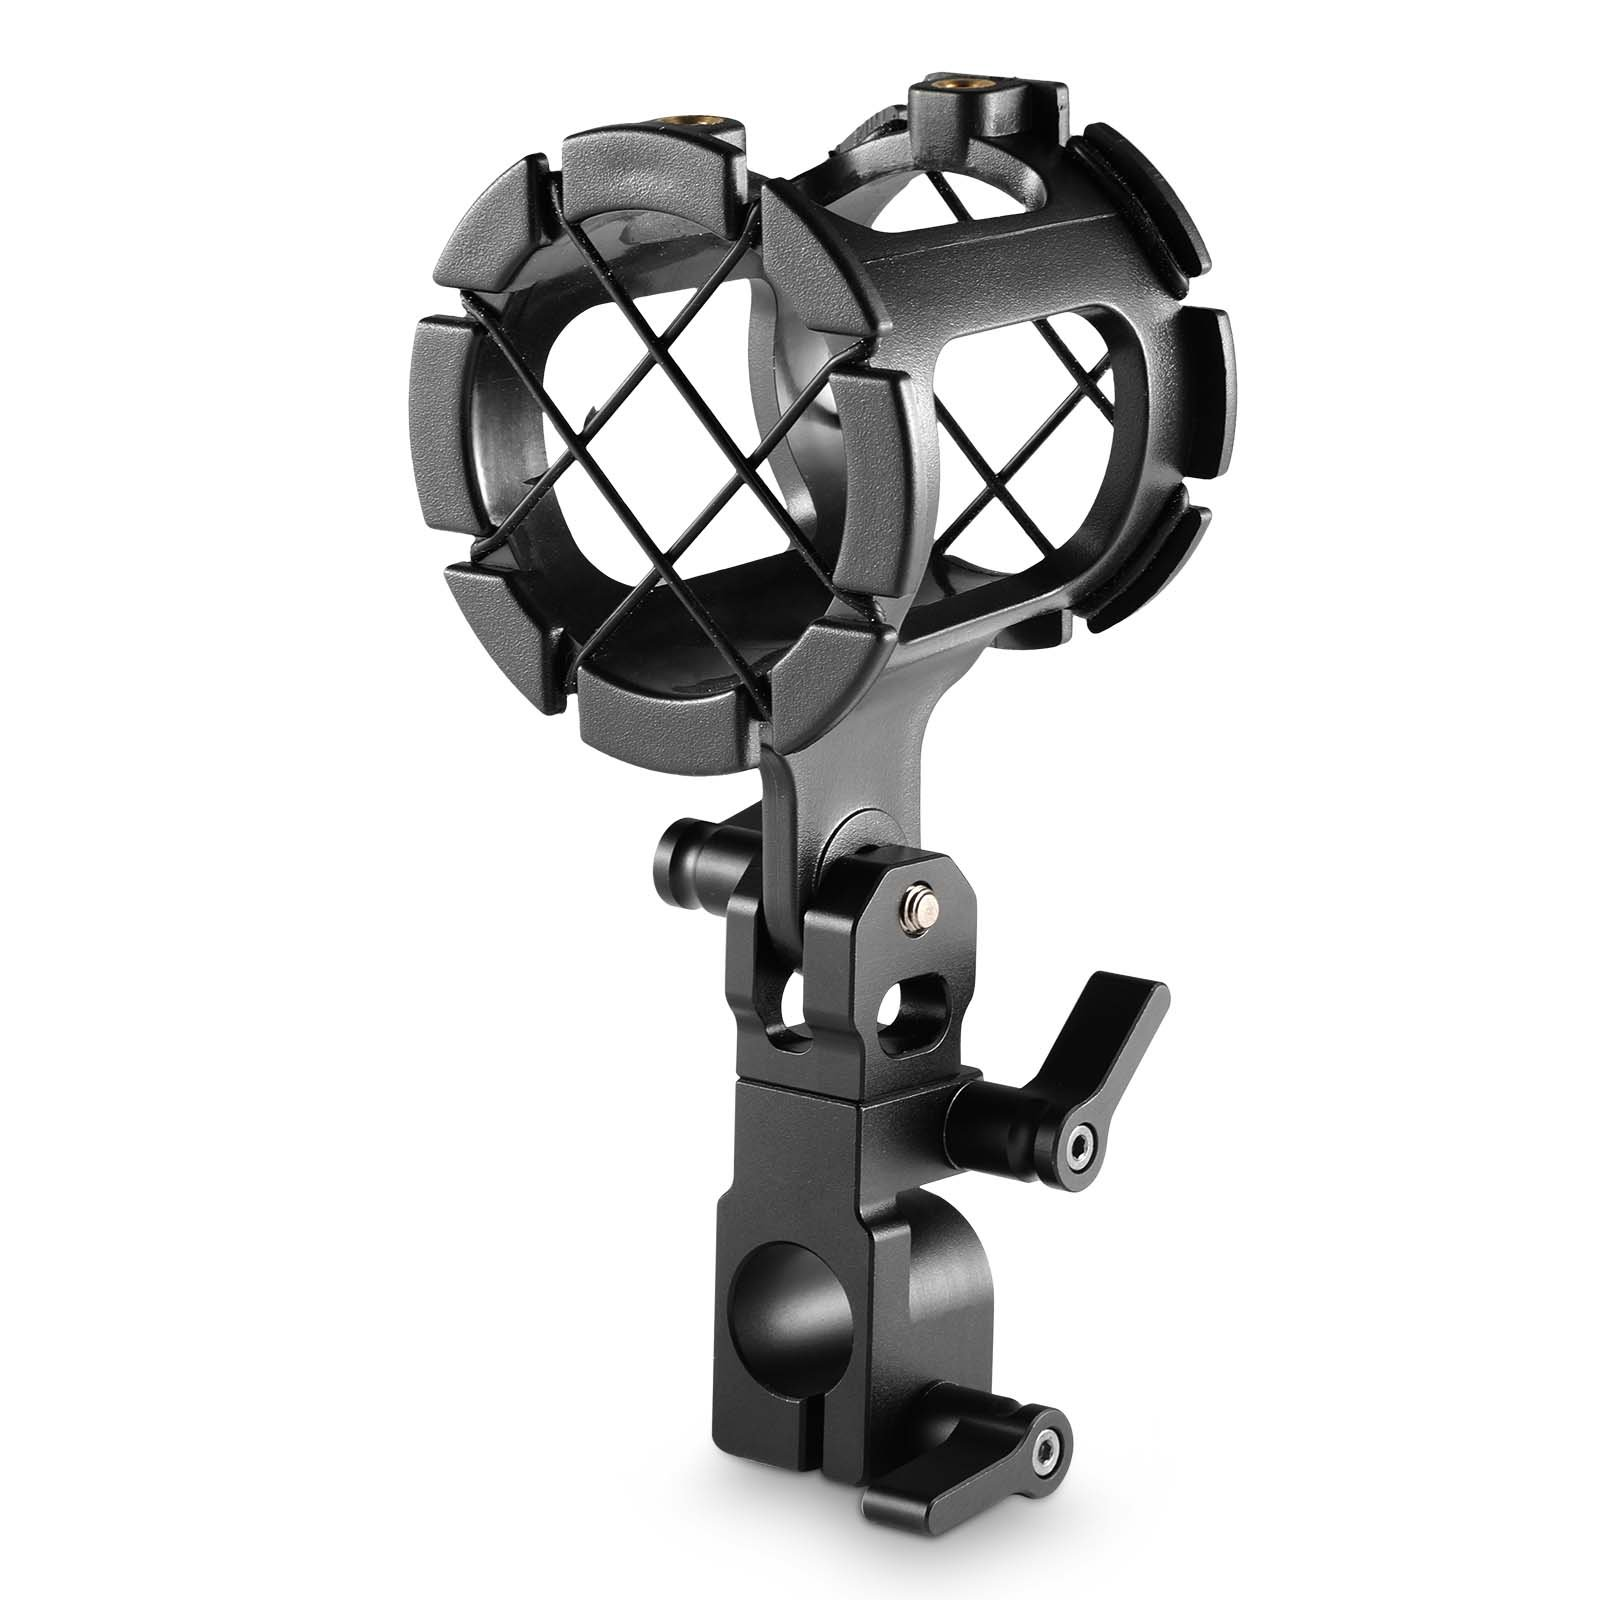 SmallRig 360 Degree Universal Camera Microphone Mount Suspension Shock Mount with 15mm Rod Clamp - 1802